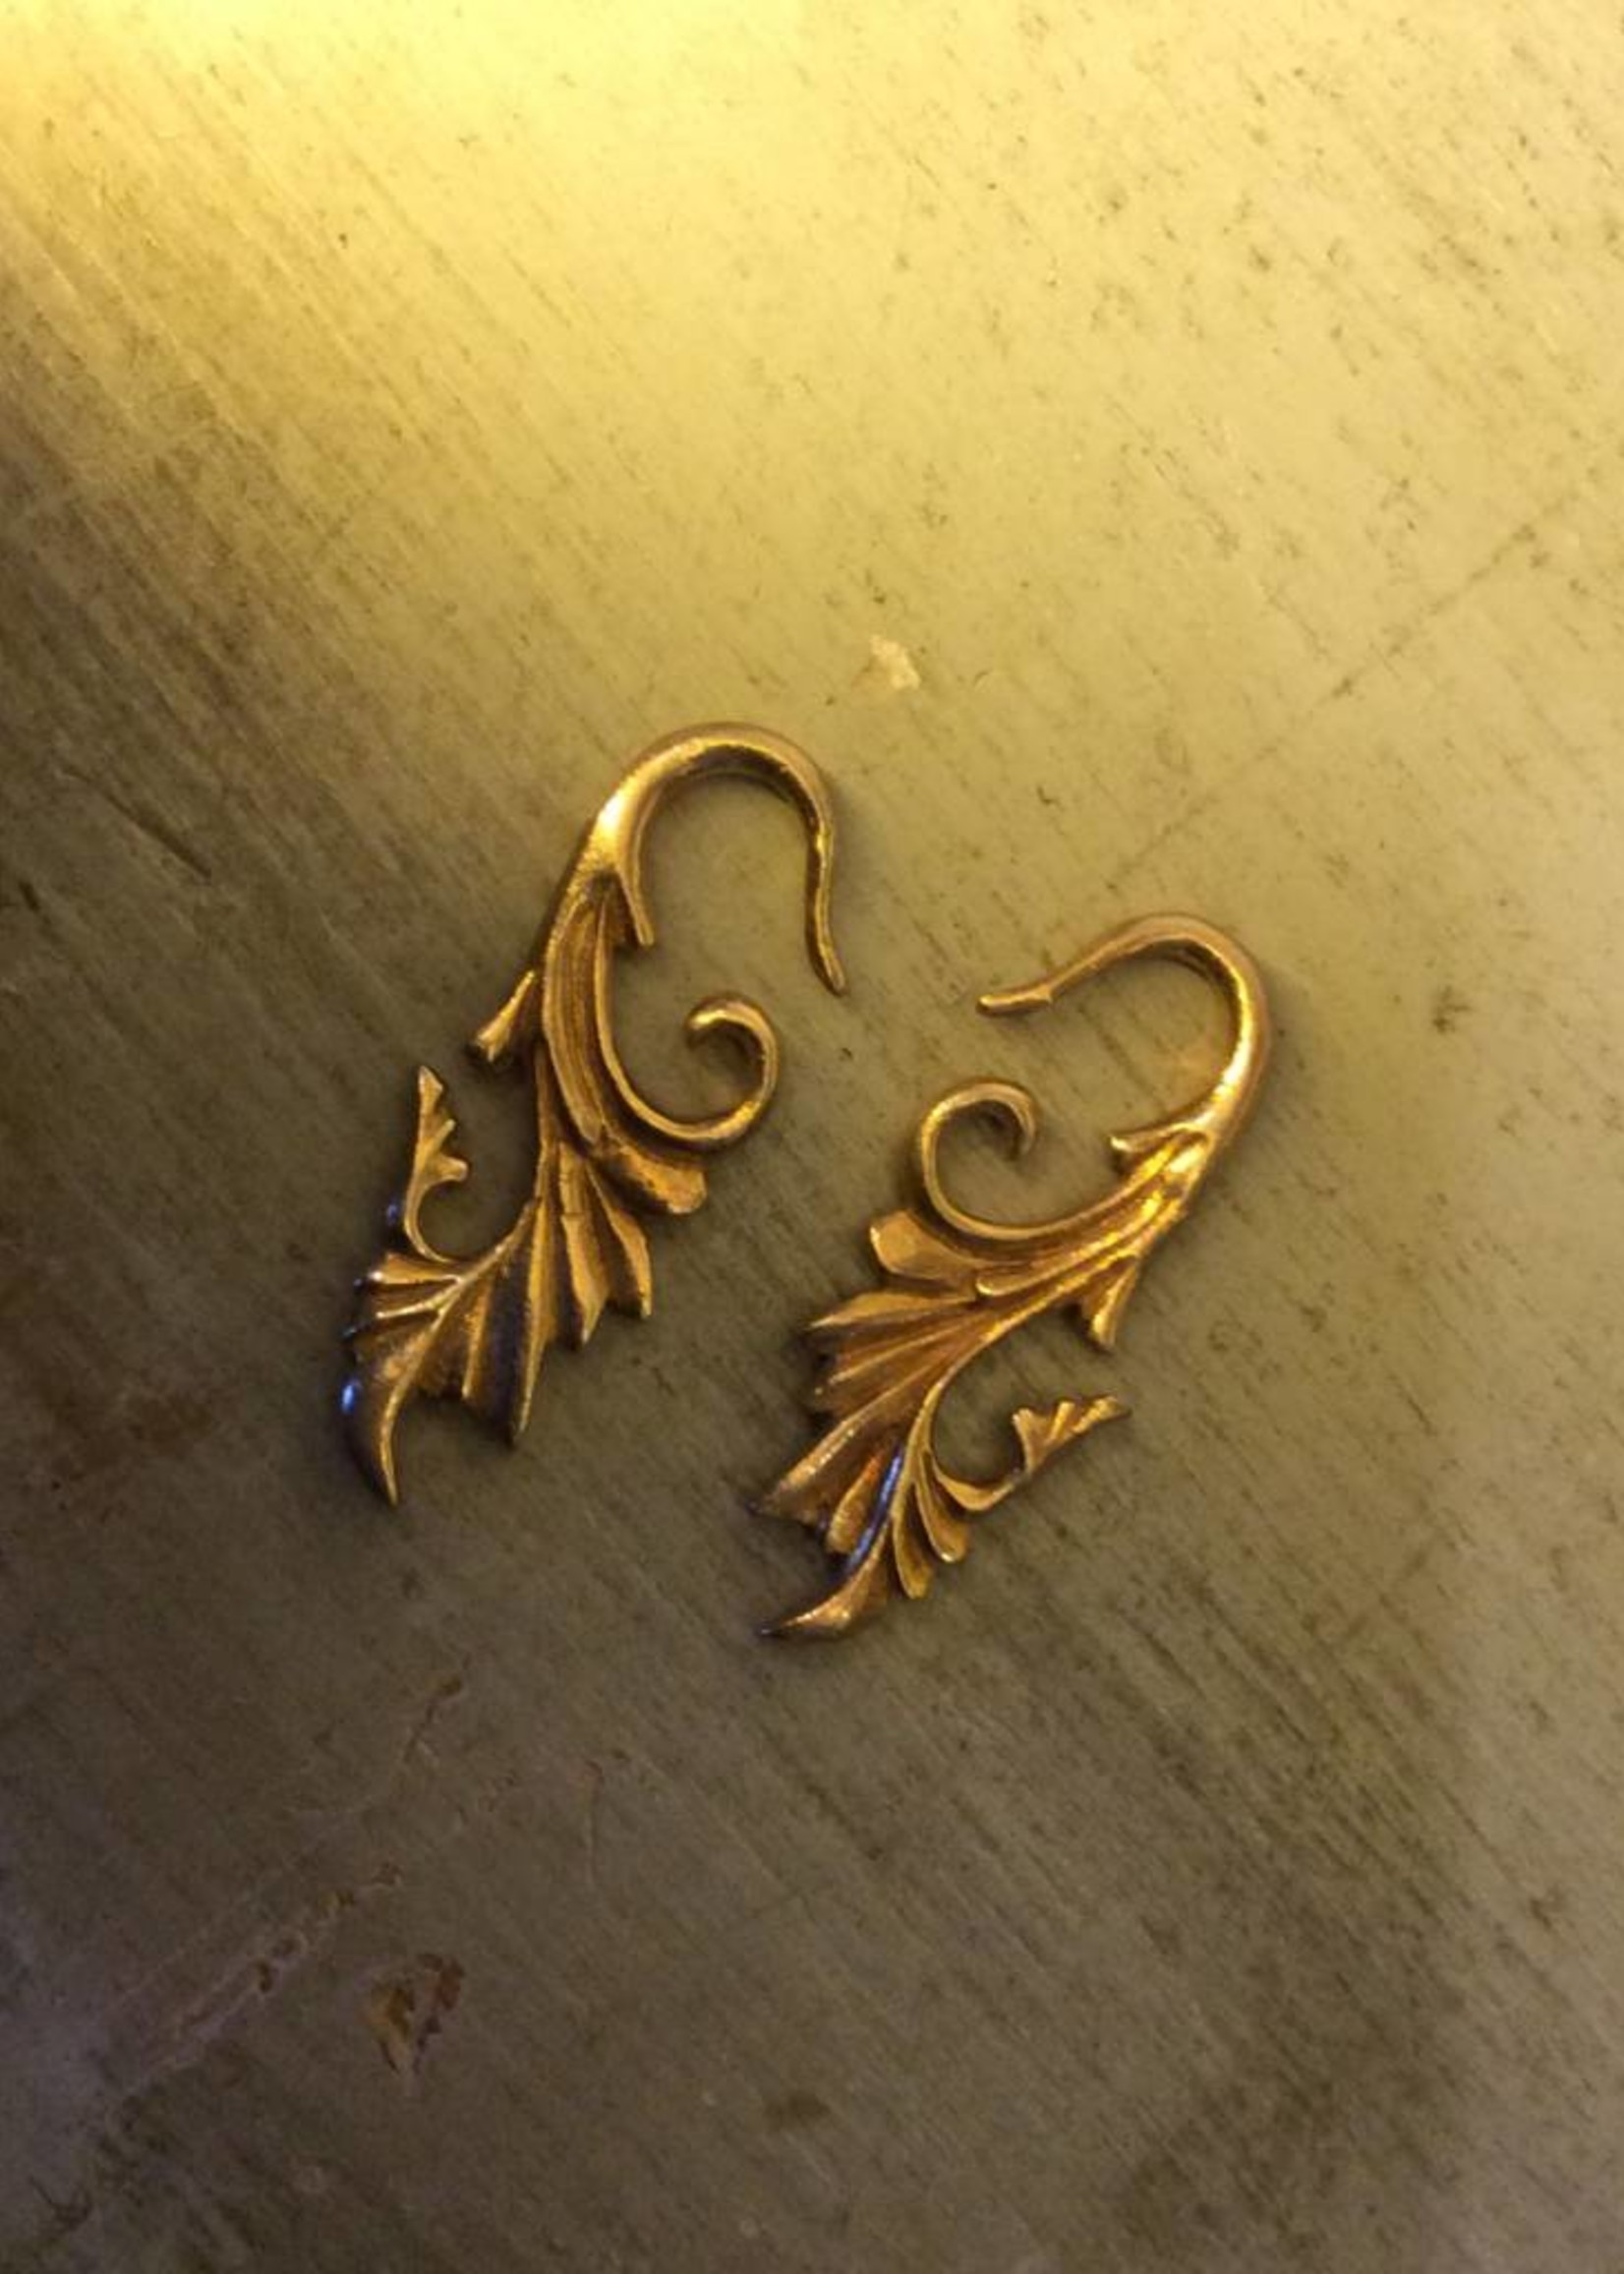 12g Gold Plated Filagree Hangers